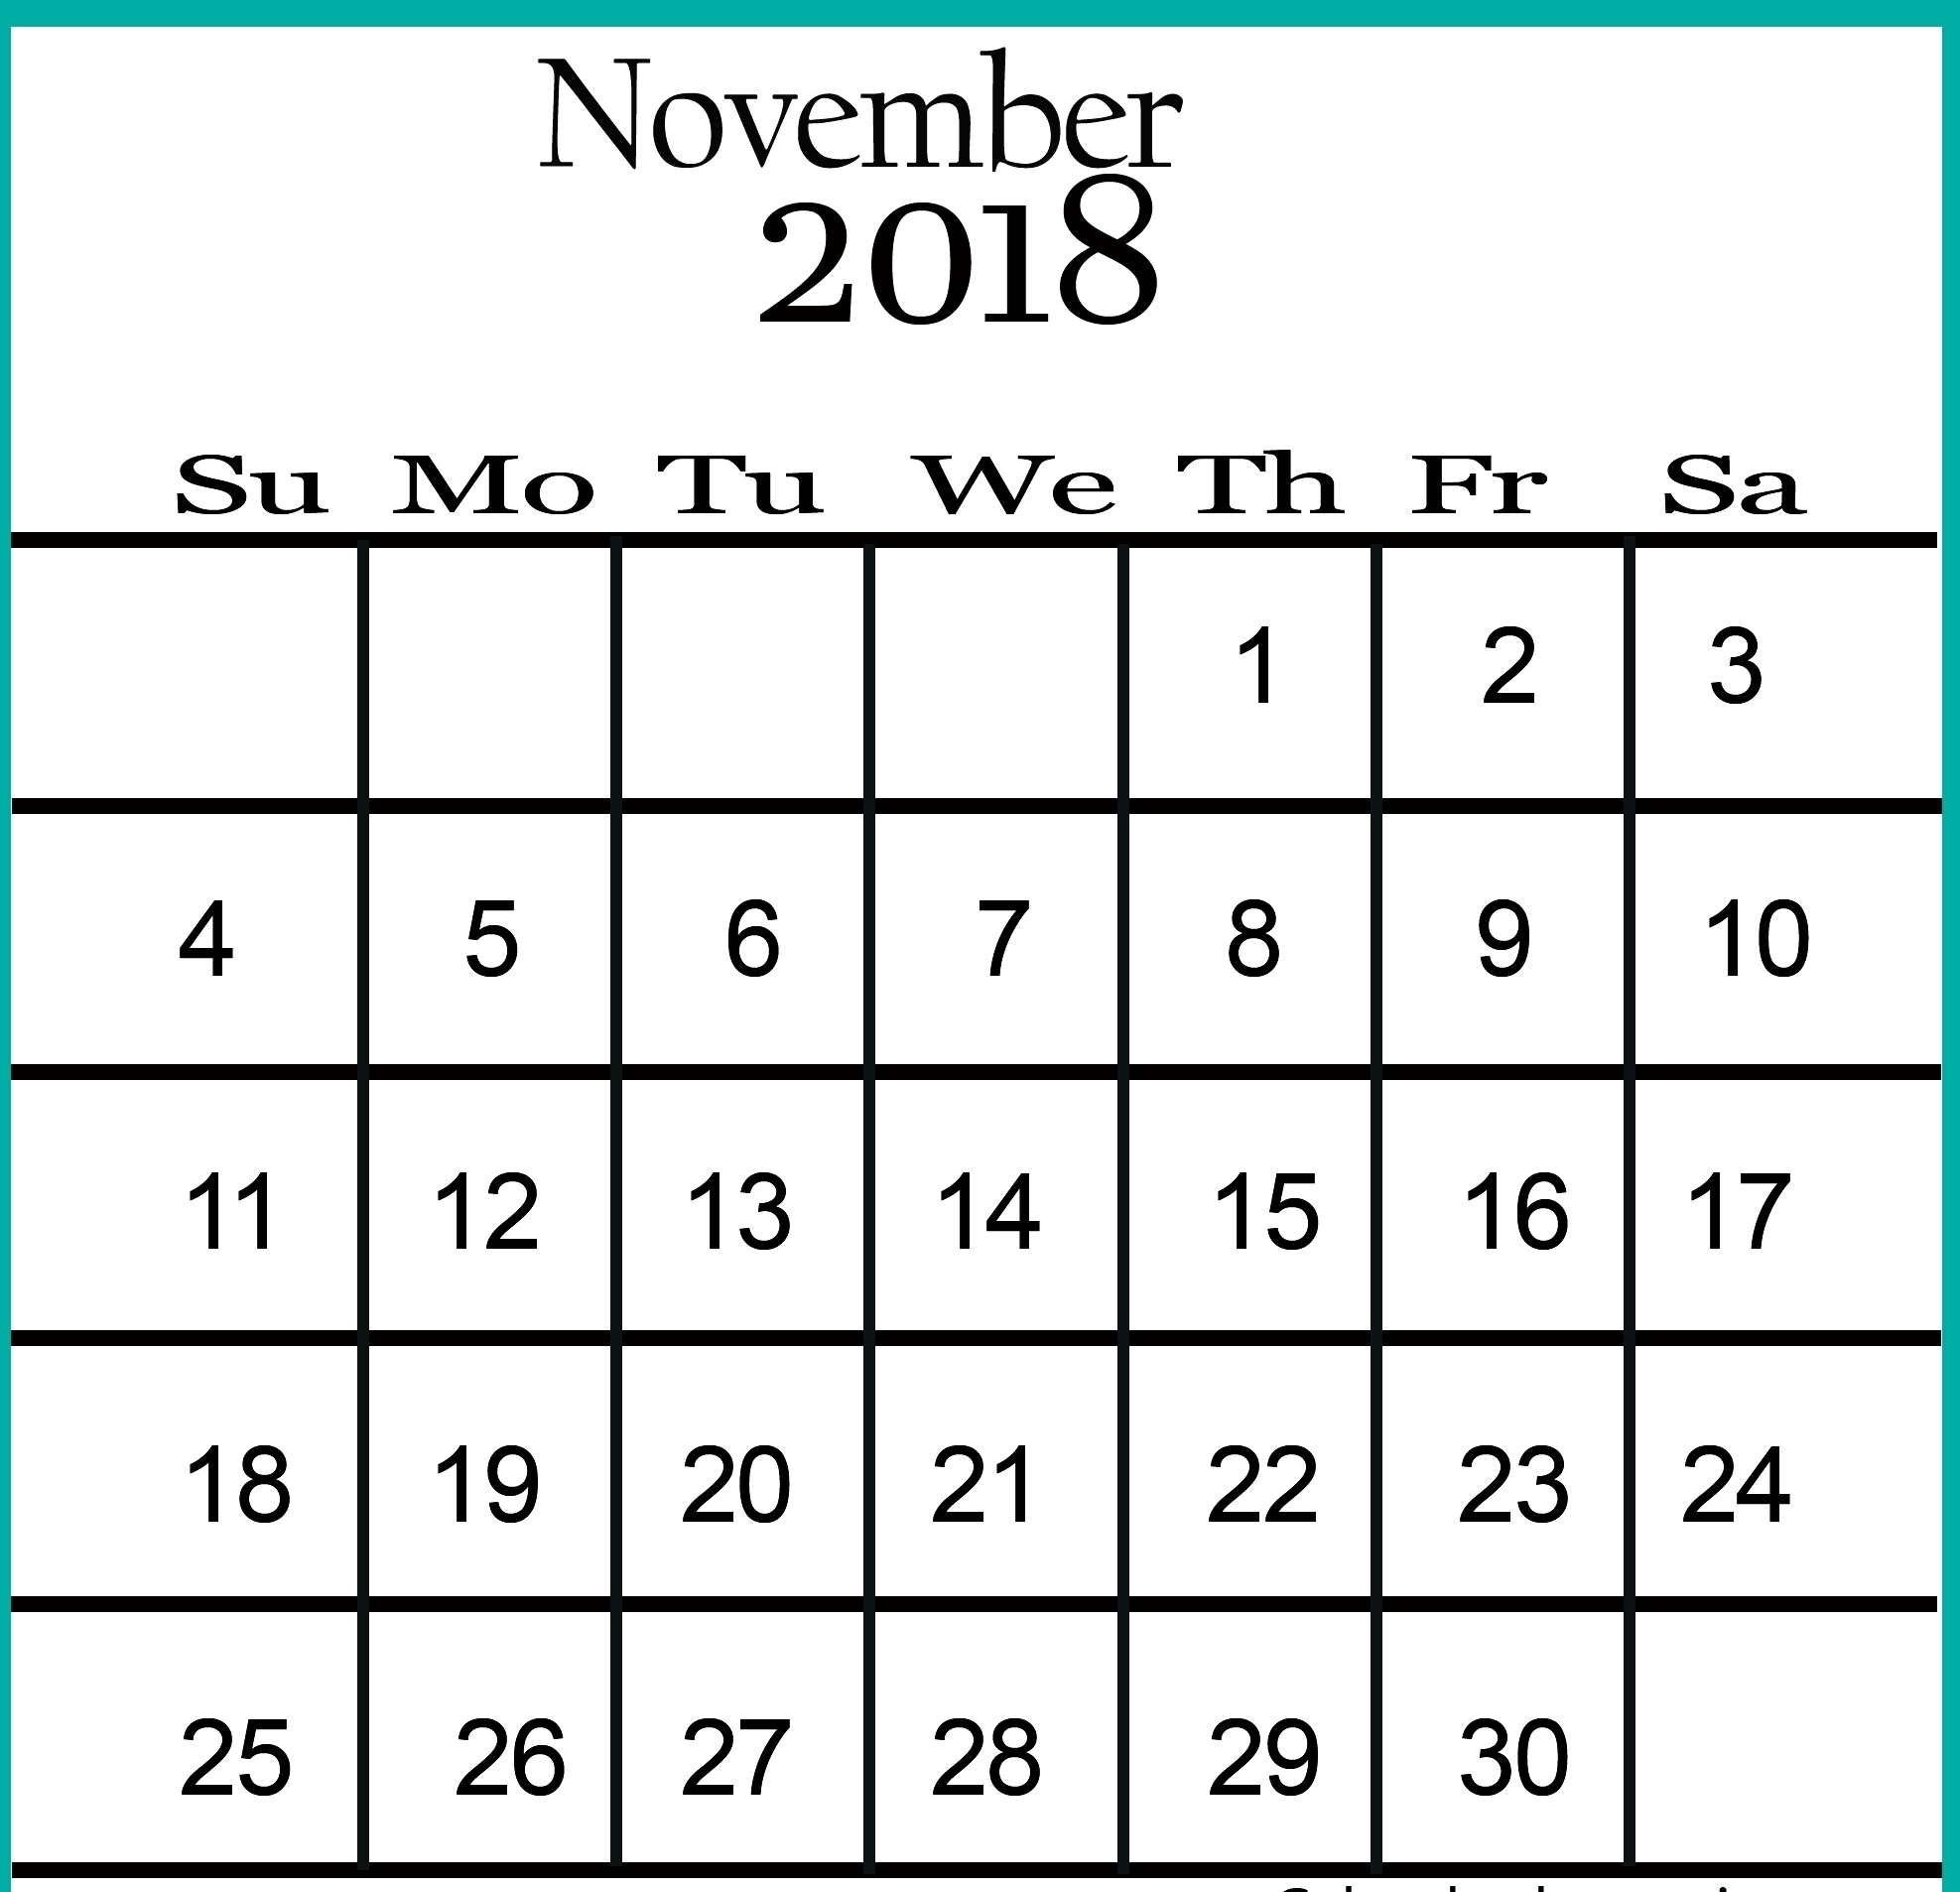 november 2018 calendar printable word calendar template letter::November 2018 Calendar Printable